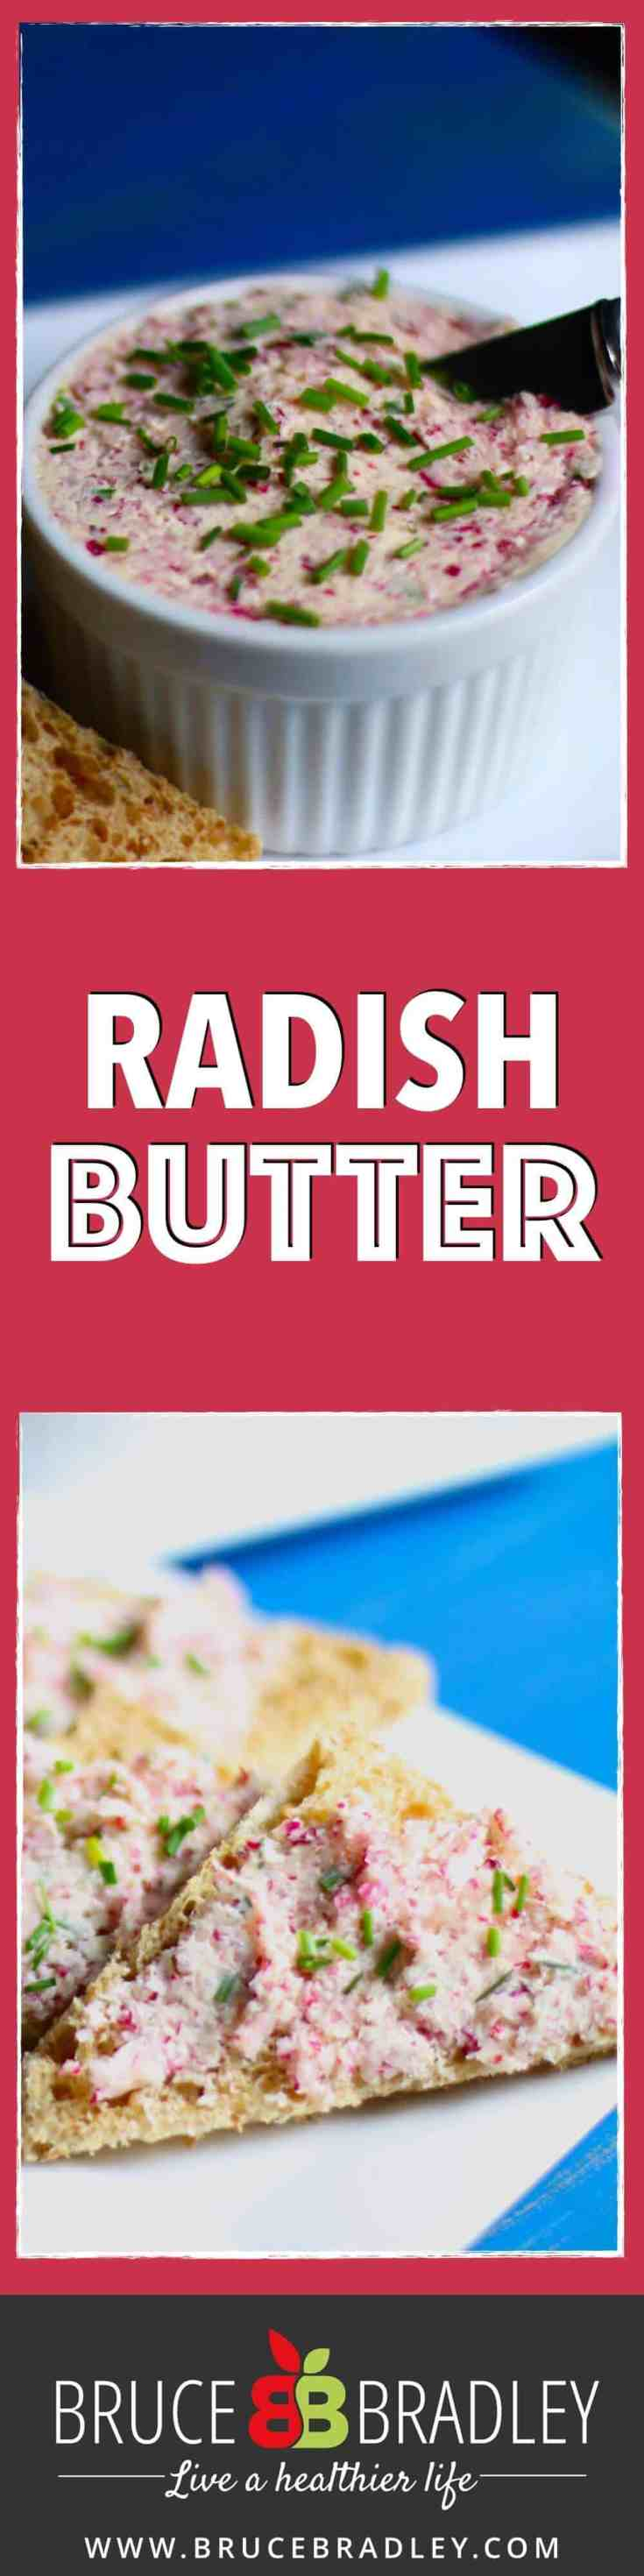 Radish butter is a delicious, super easy way to add some color and veggies to your snacks or meals!